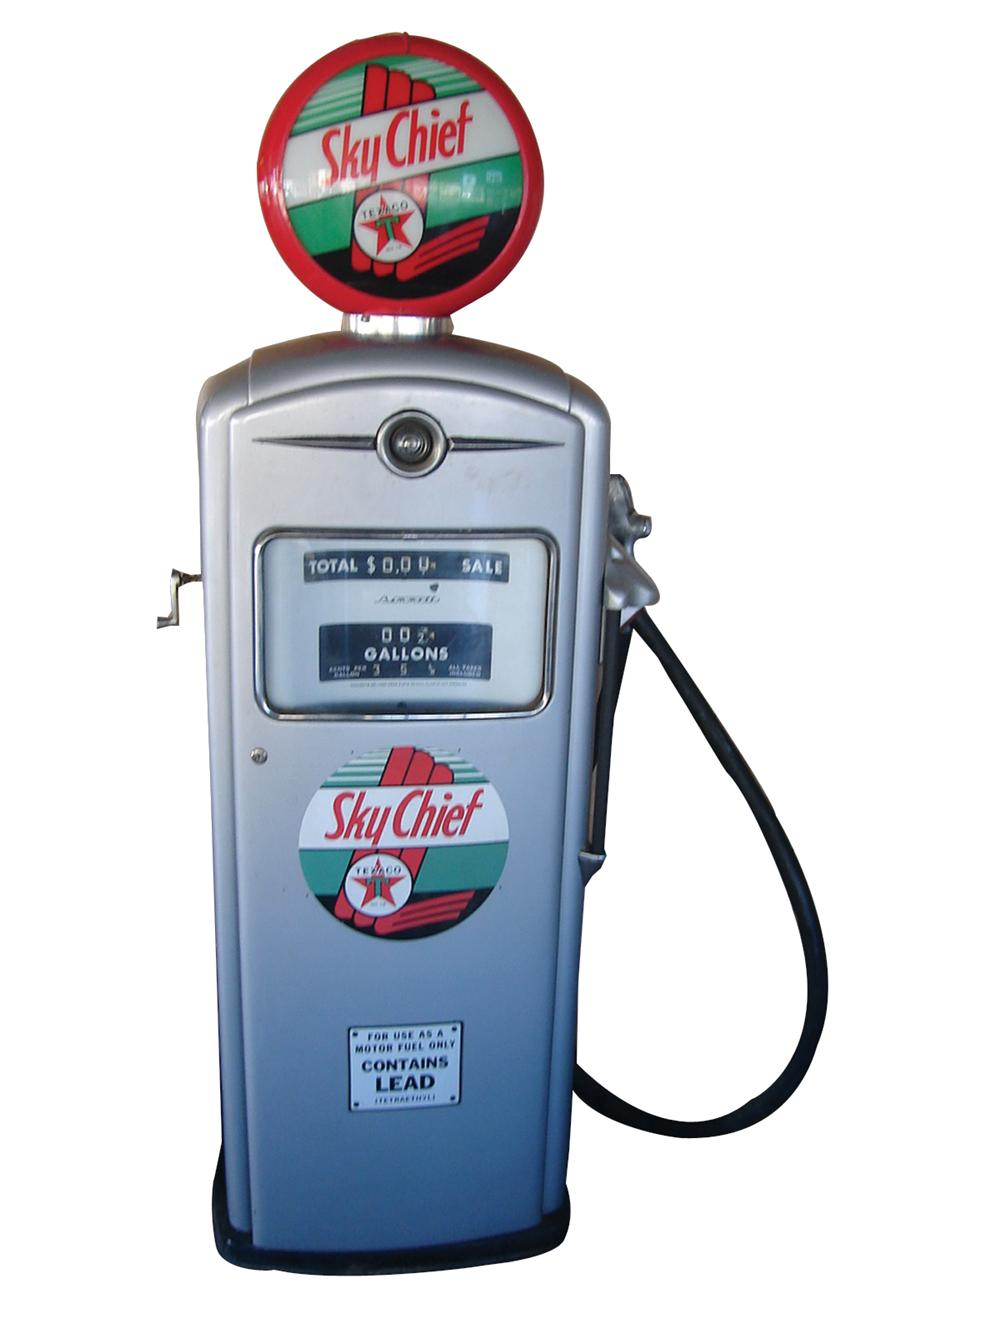 1950 Texaco Sky Chief service station Bennett gas pump model #956. - Front 3/4 - 63221